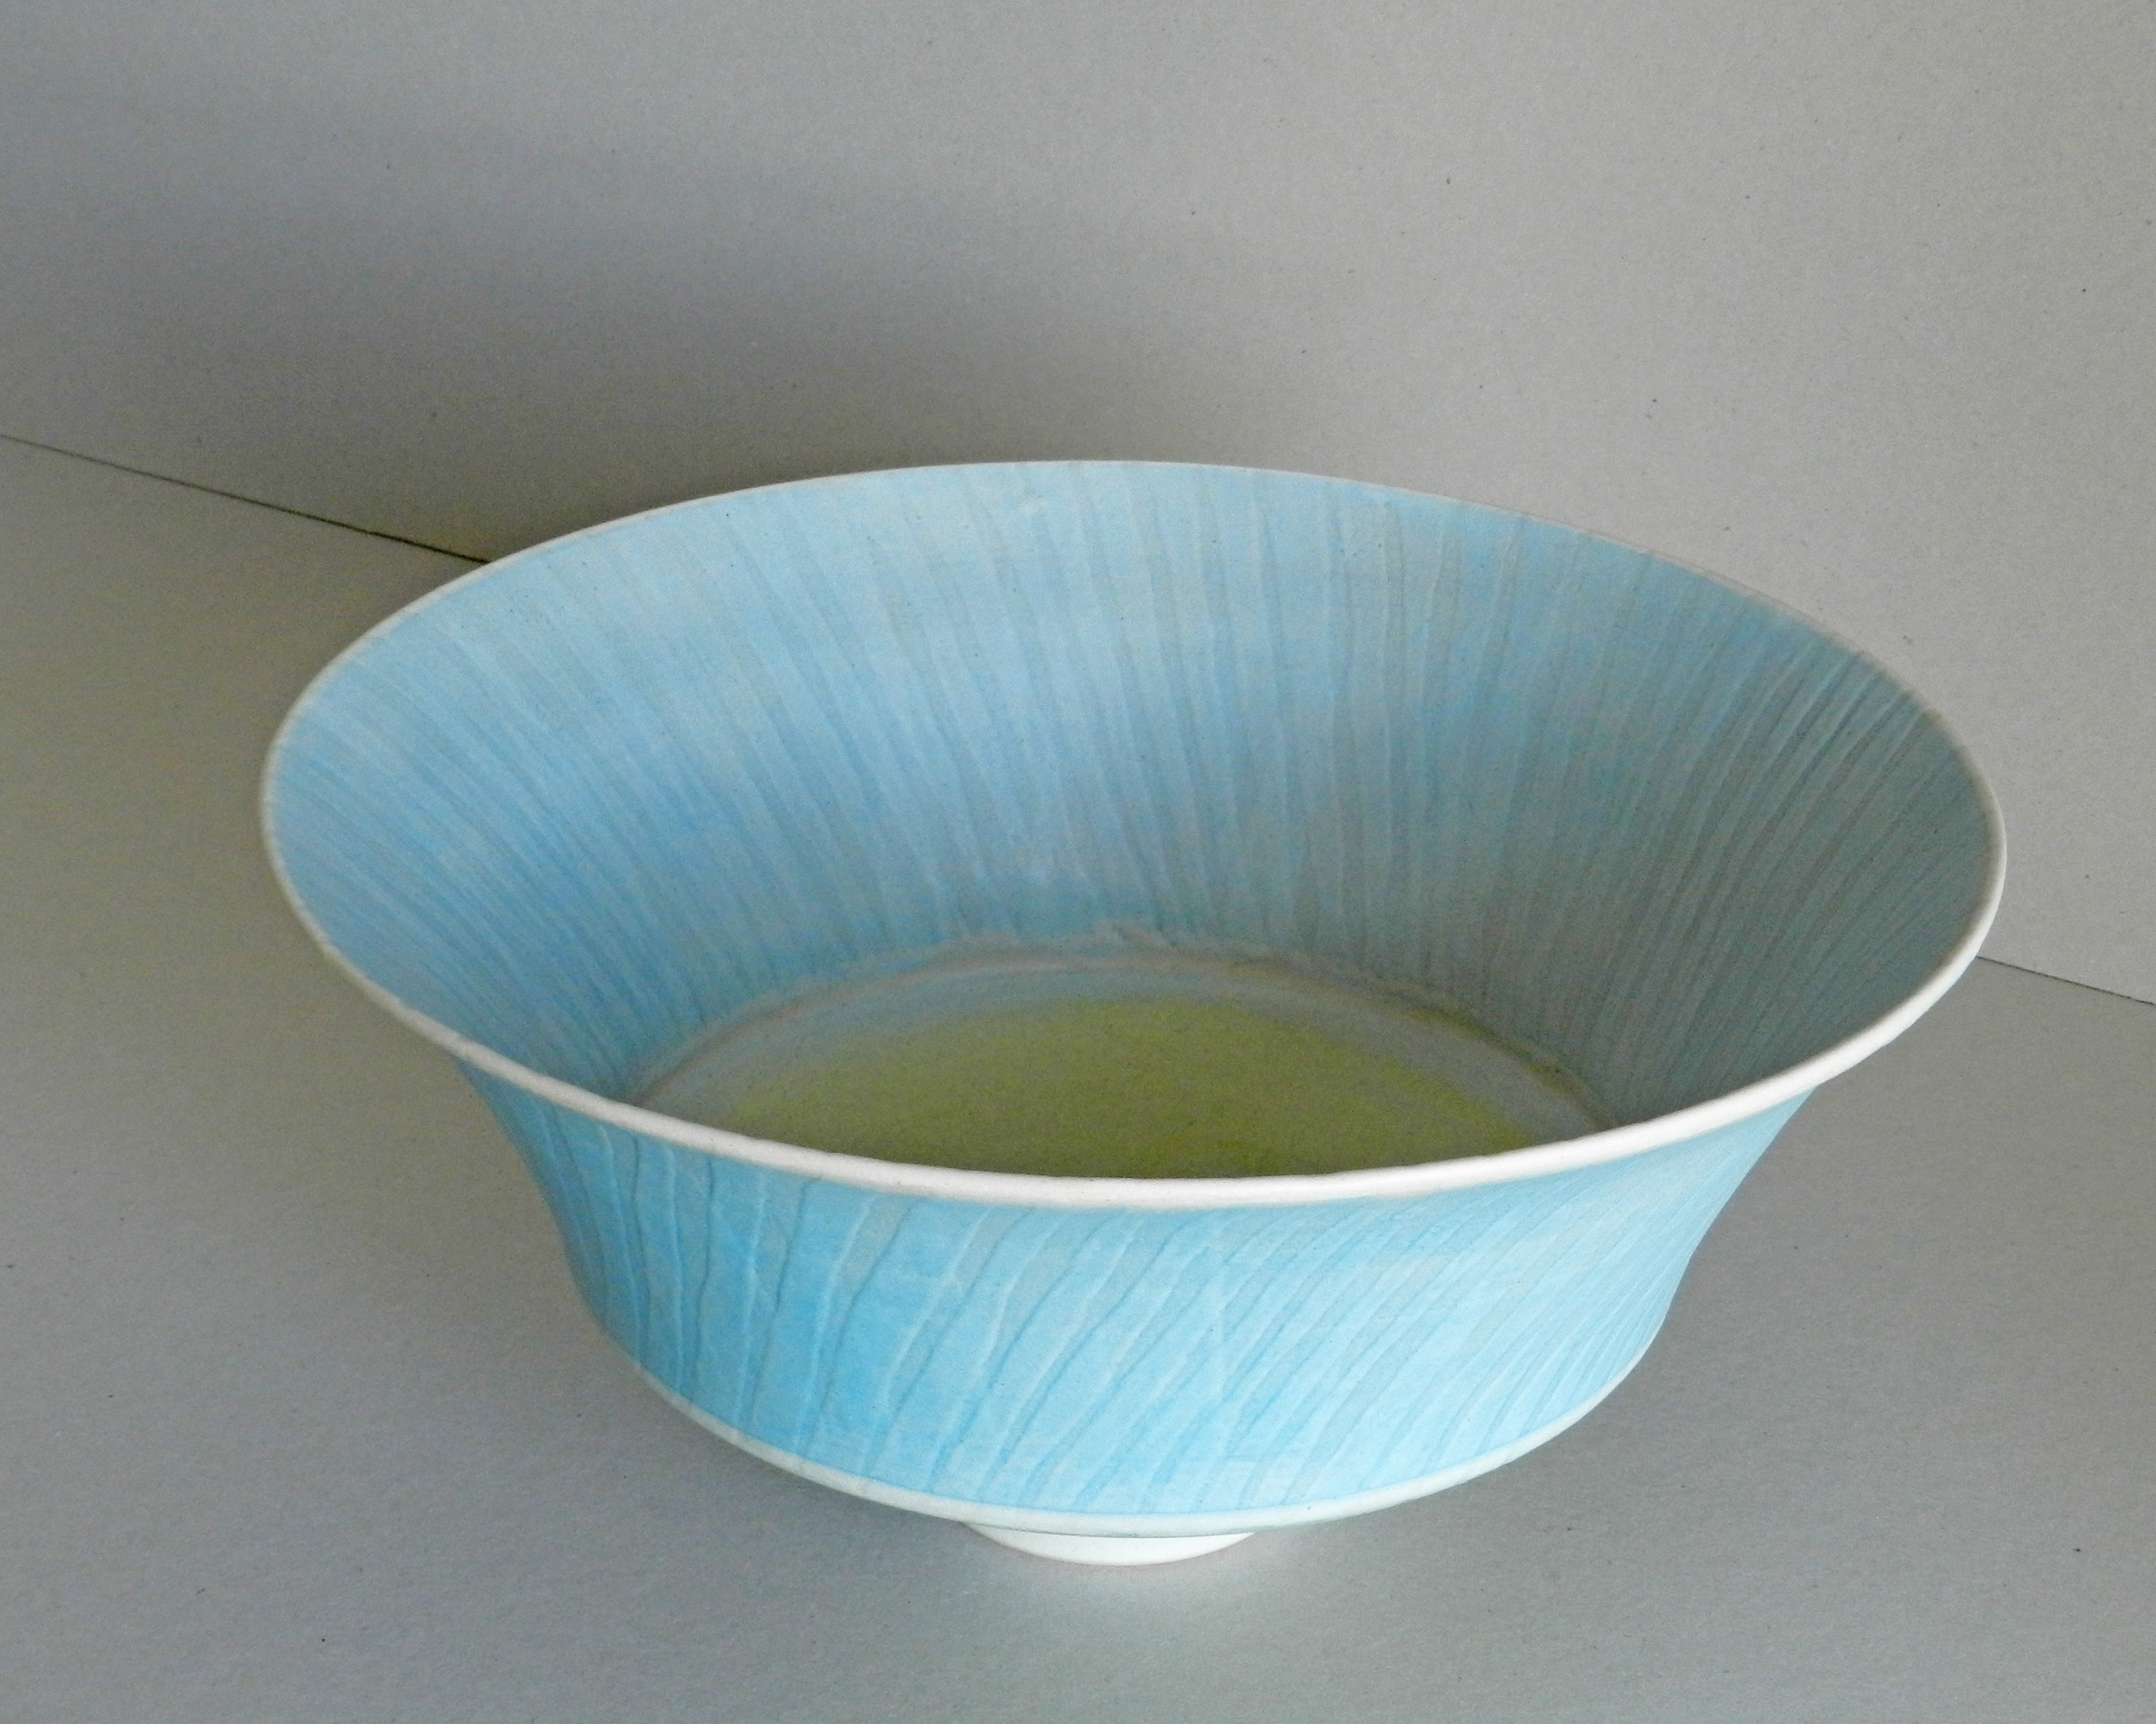 "<span class=""link fancybox-details-link""><a href=""/artists/243-christine-feiler/works/6873-christine-feiler-large-double-rim-bowl-2018/"">View Detail Page</a></span><div class=""artist""><strong>Christine Feiler</strong></div> b. 1948 <div class=""title""><em>Large double rim bowl</em>, 2018</div> <div class=""signed_and_dated"">Ceramicist mark on base</div> <div class=""medium"">Stoneware with enamels</div><div class=""price"">£385.00</div><div class=""copyright_line"">Copyright The Artist</div>"